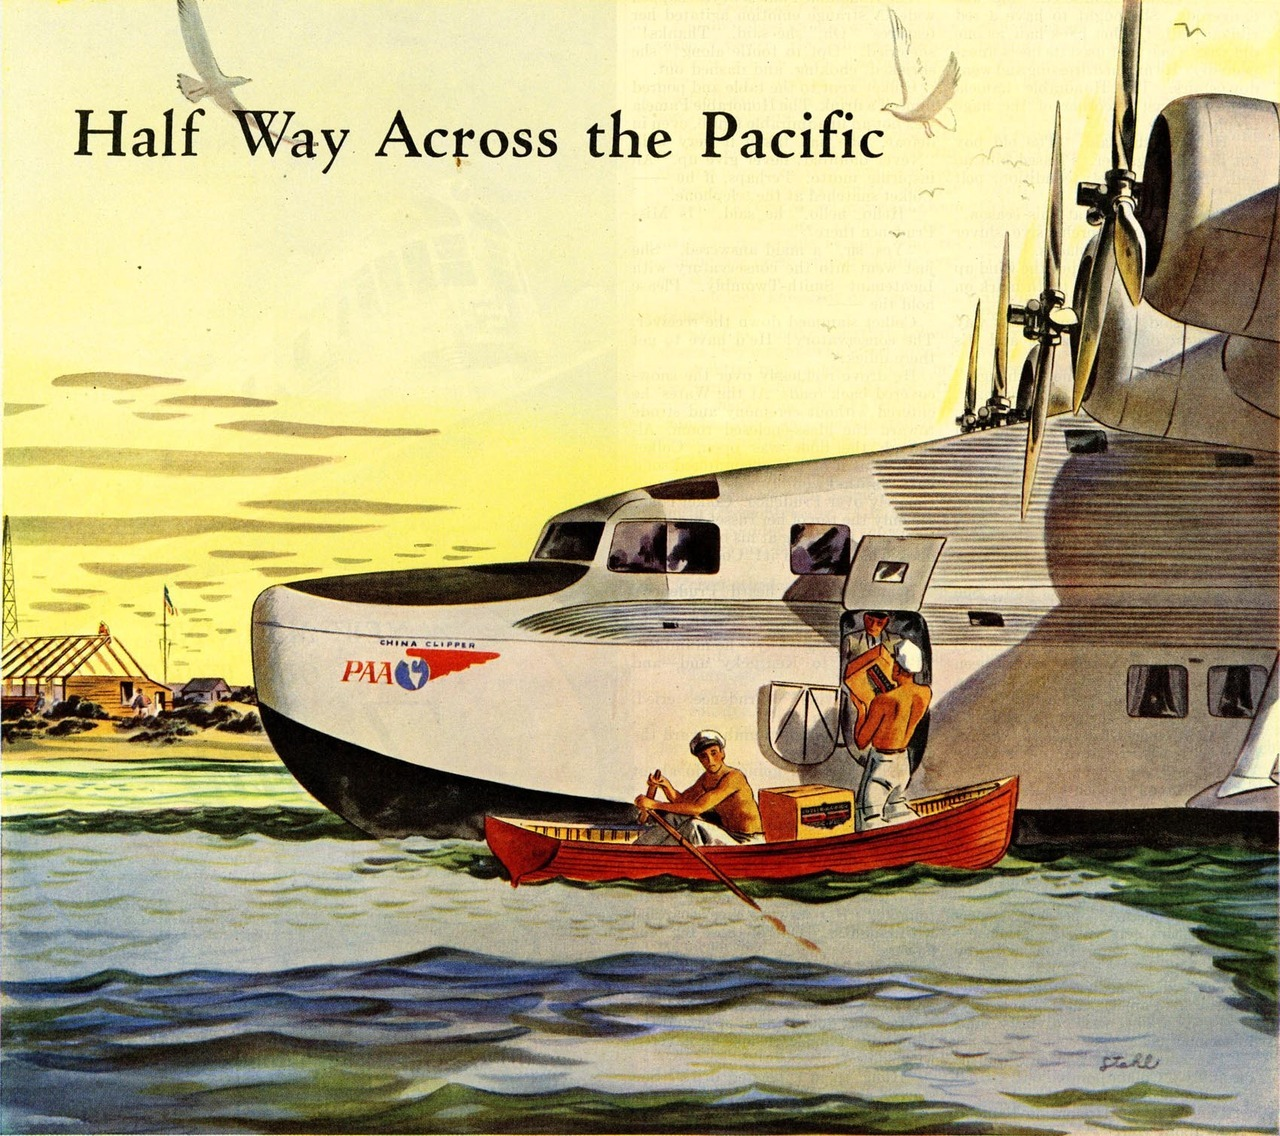 Illustration from an advertisement, 1938